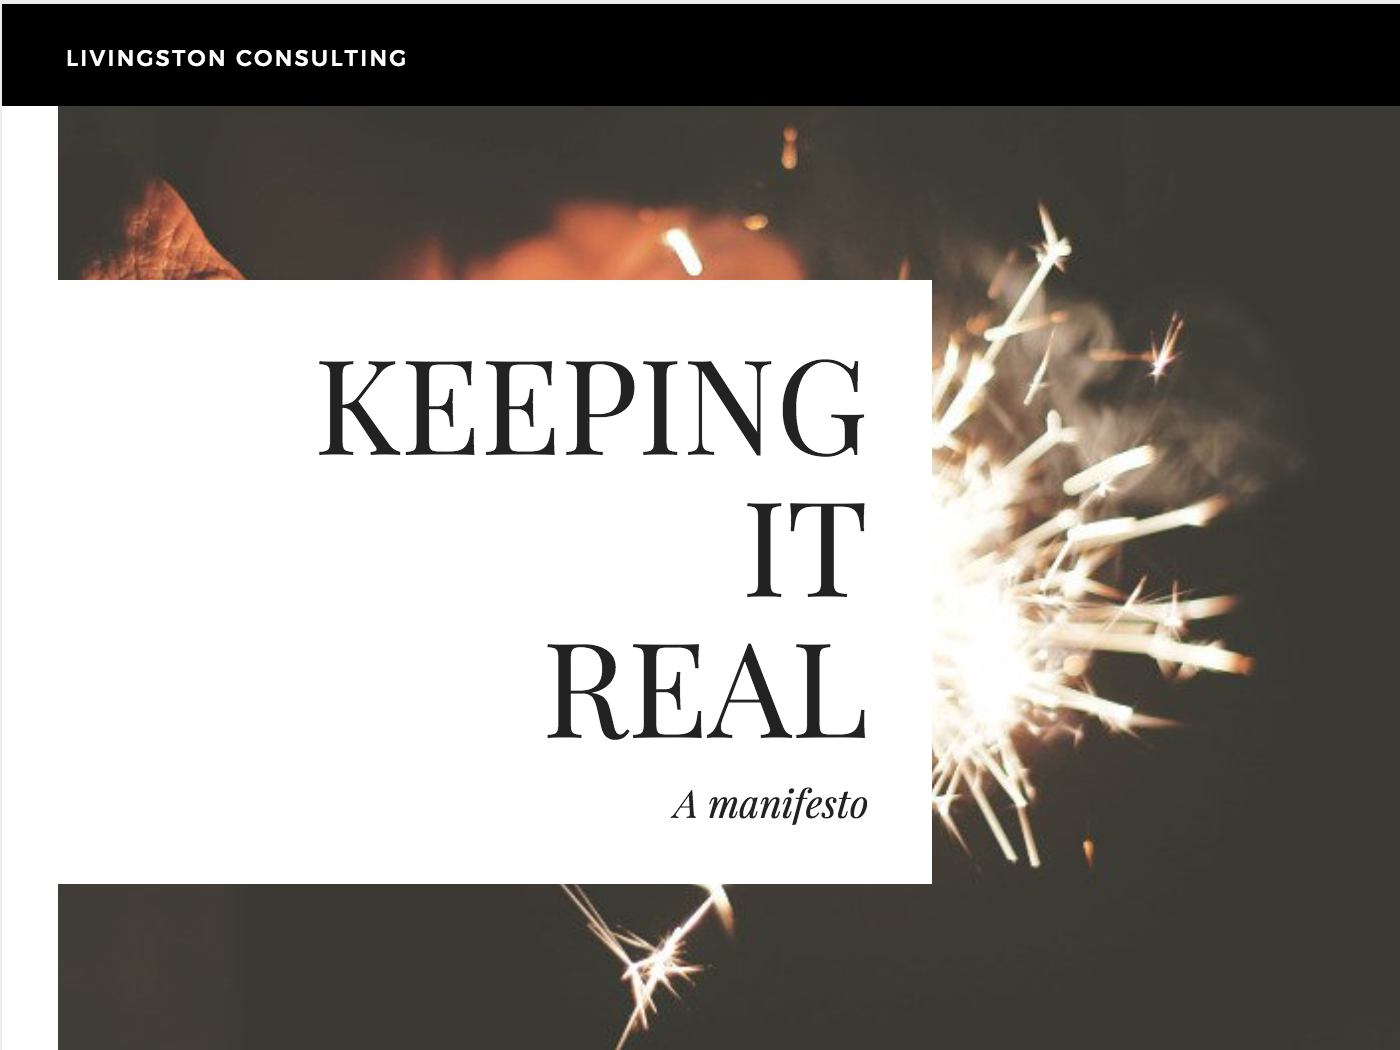 Keeping It Real: A Manifesto